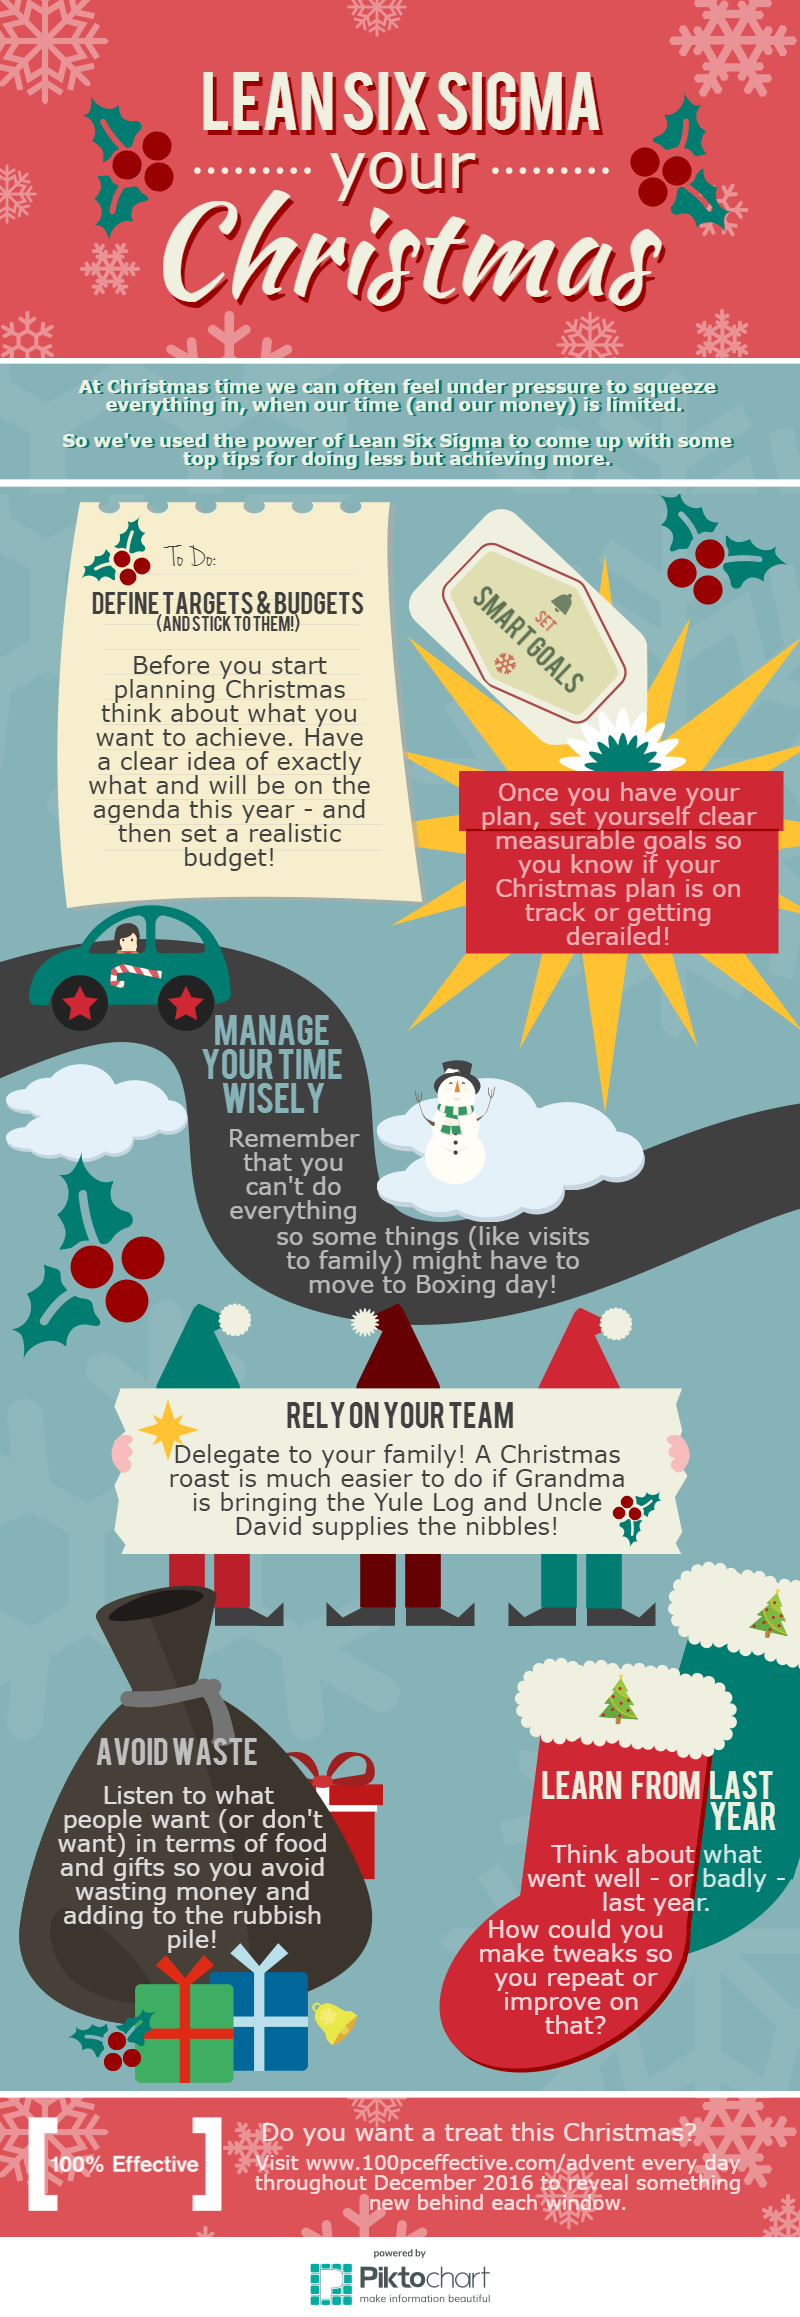 Lean Six Sigma your Christmas